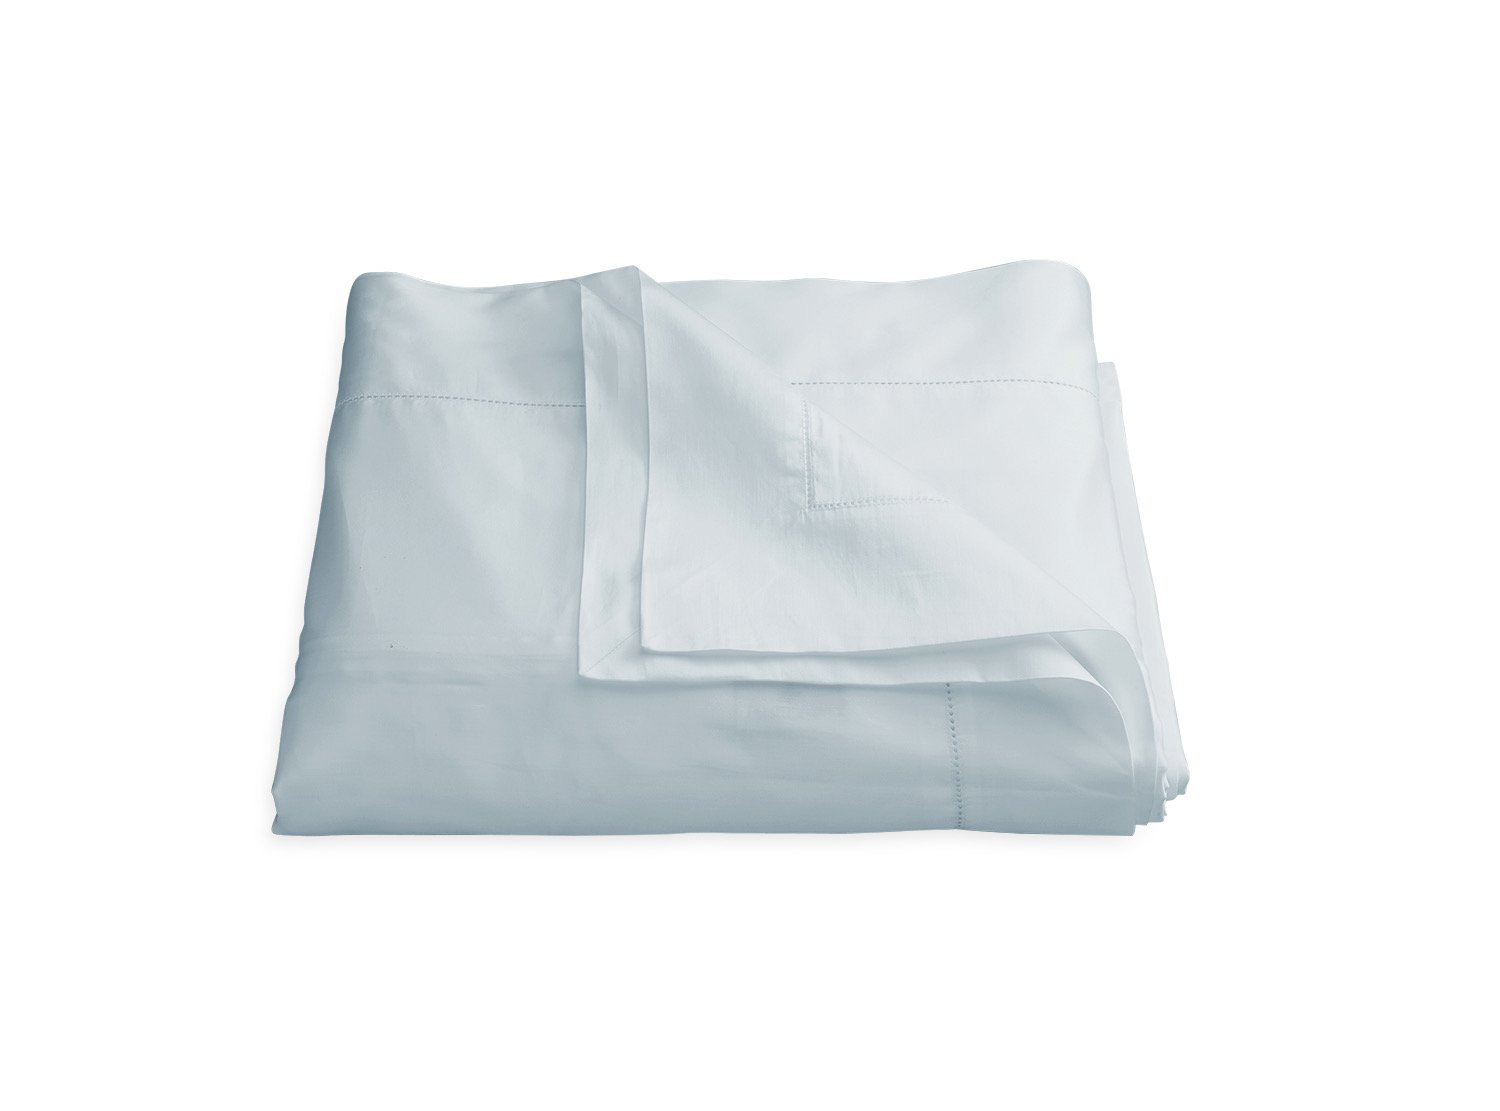 Nocturne Hemstitch Pool Duvet Cover | Matouk Sateen Bedding